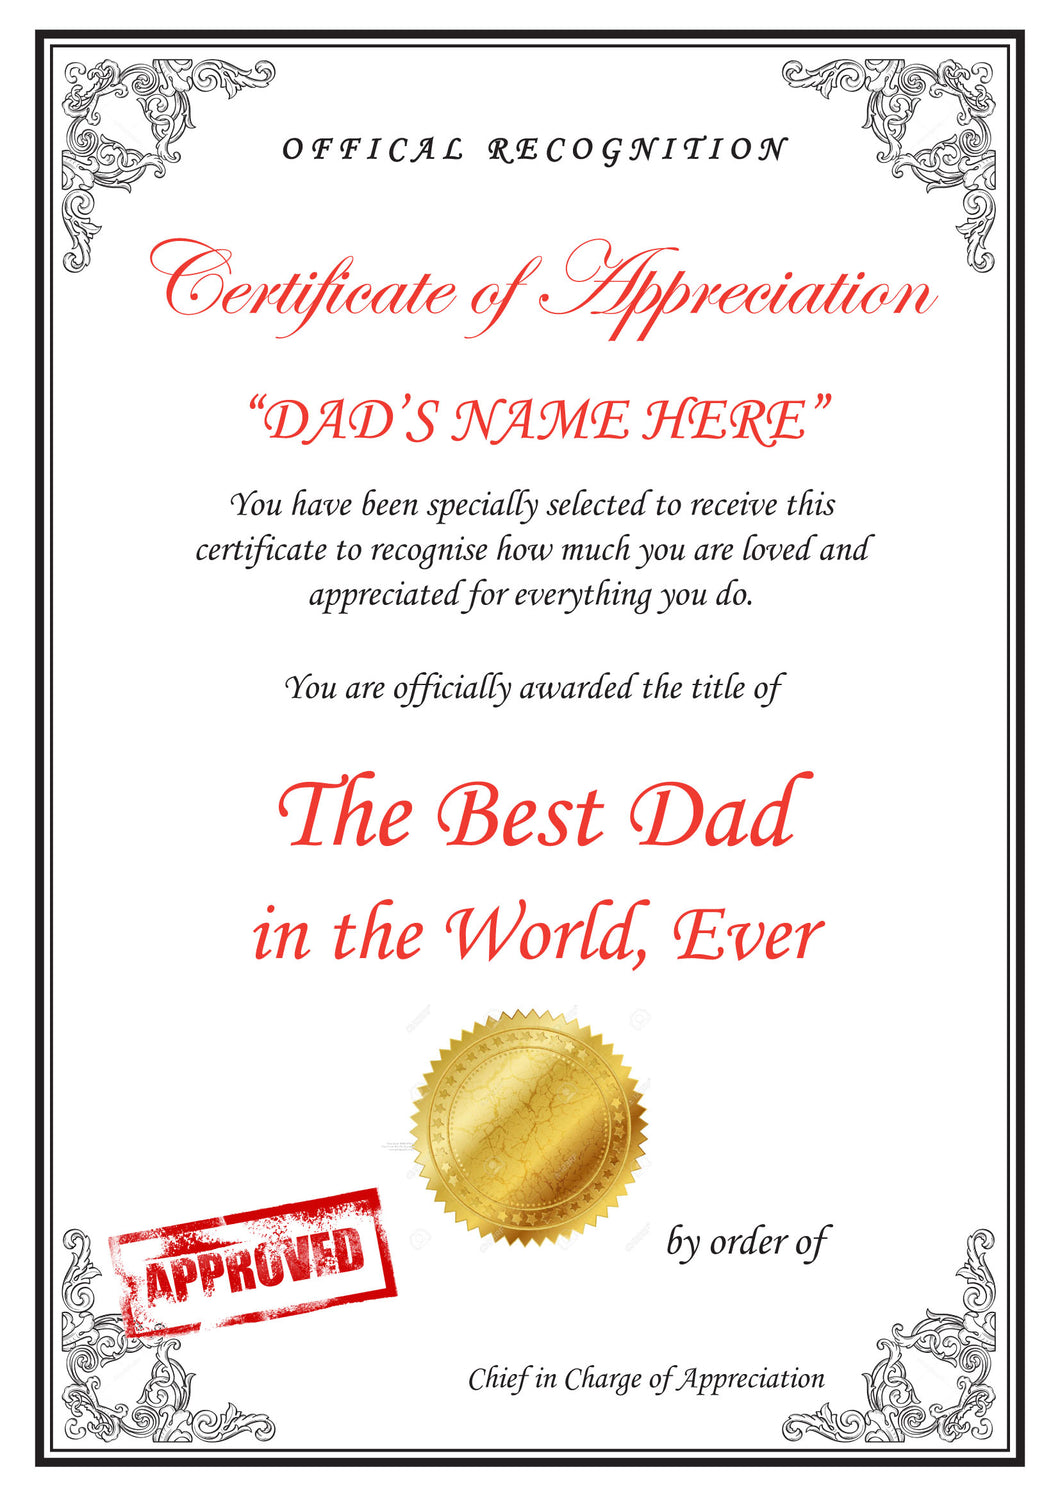 Personalised Appreciation Certificate A4 - Great Gift For Dad Father Mum Mother Nan Grandma Grandadd